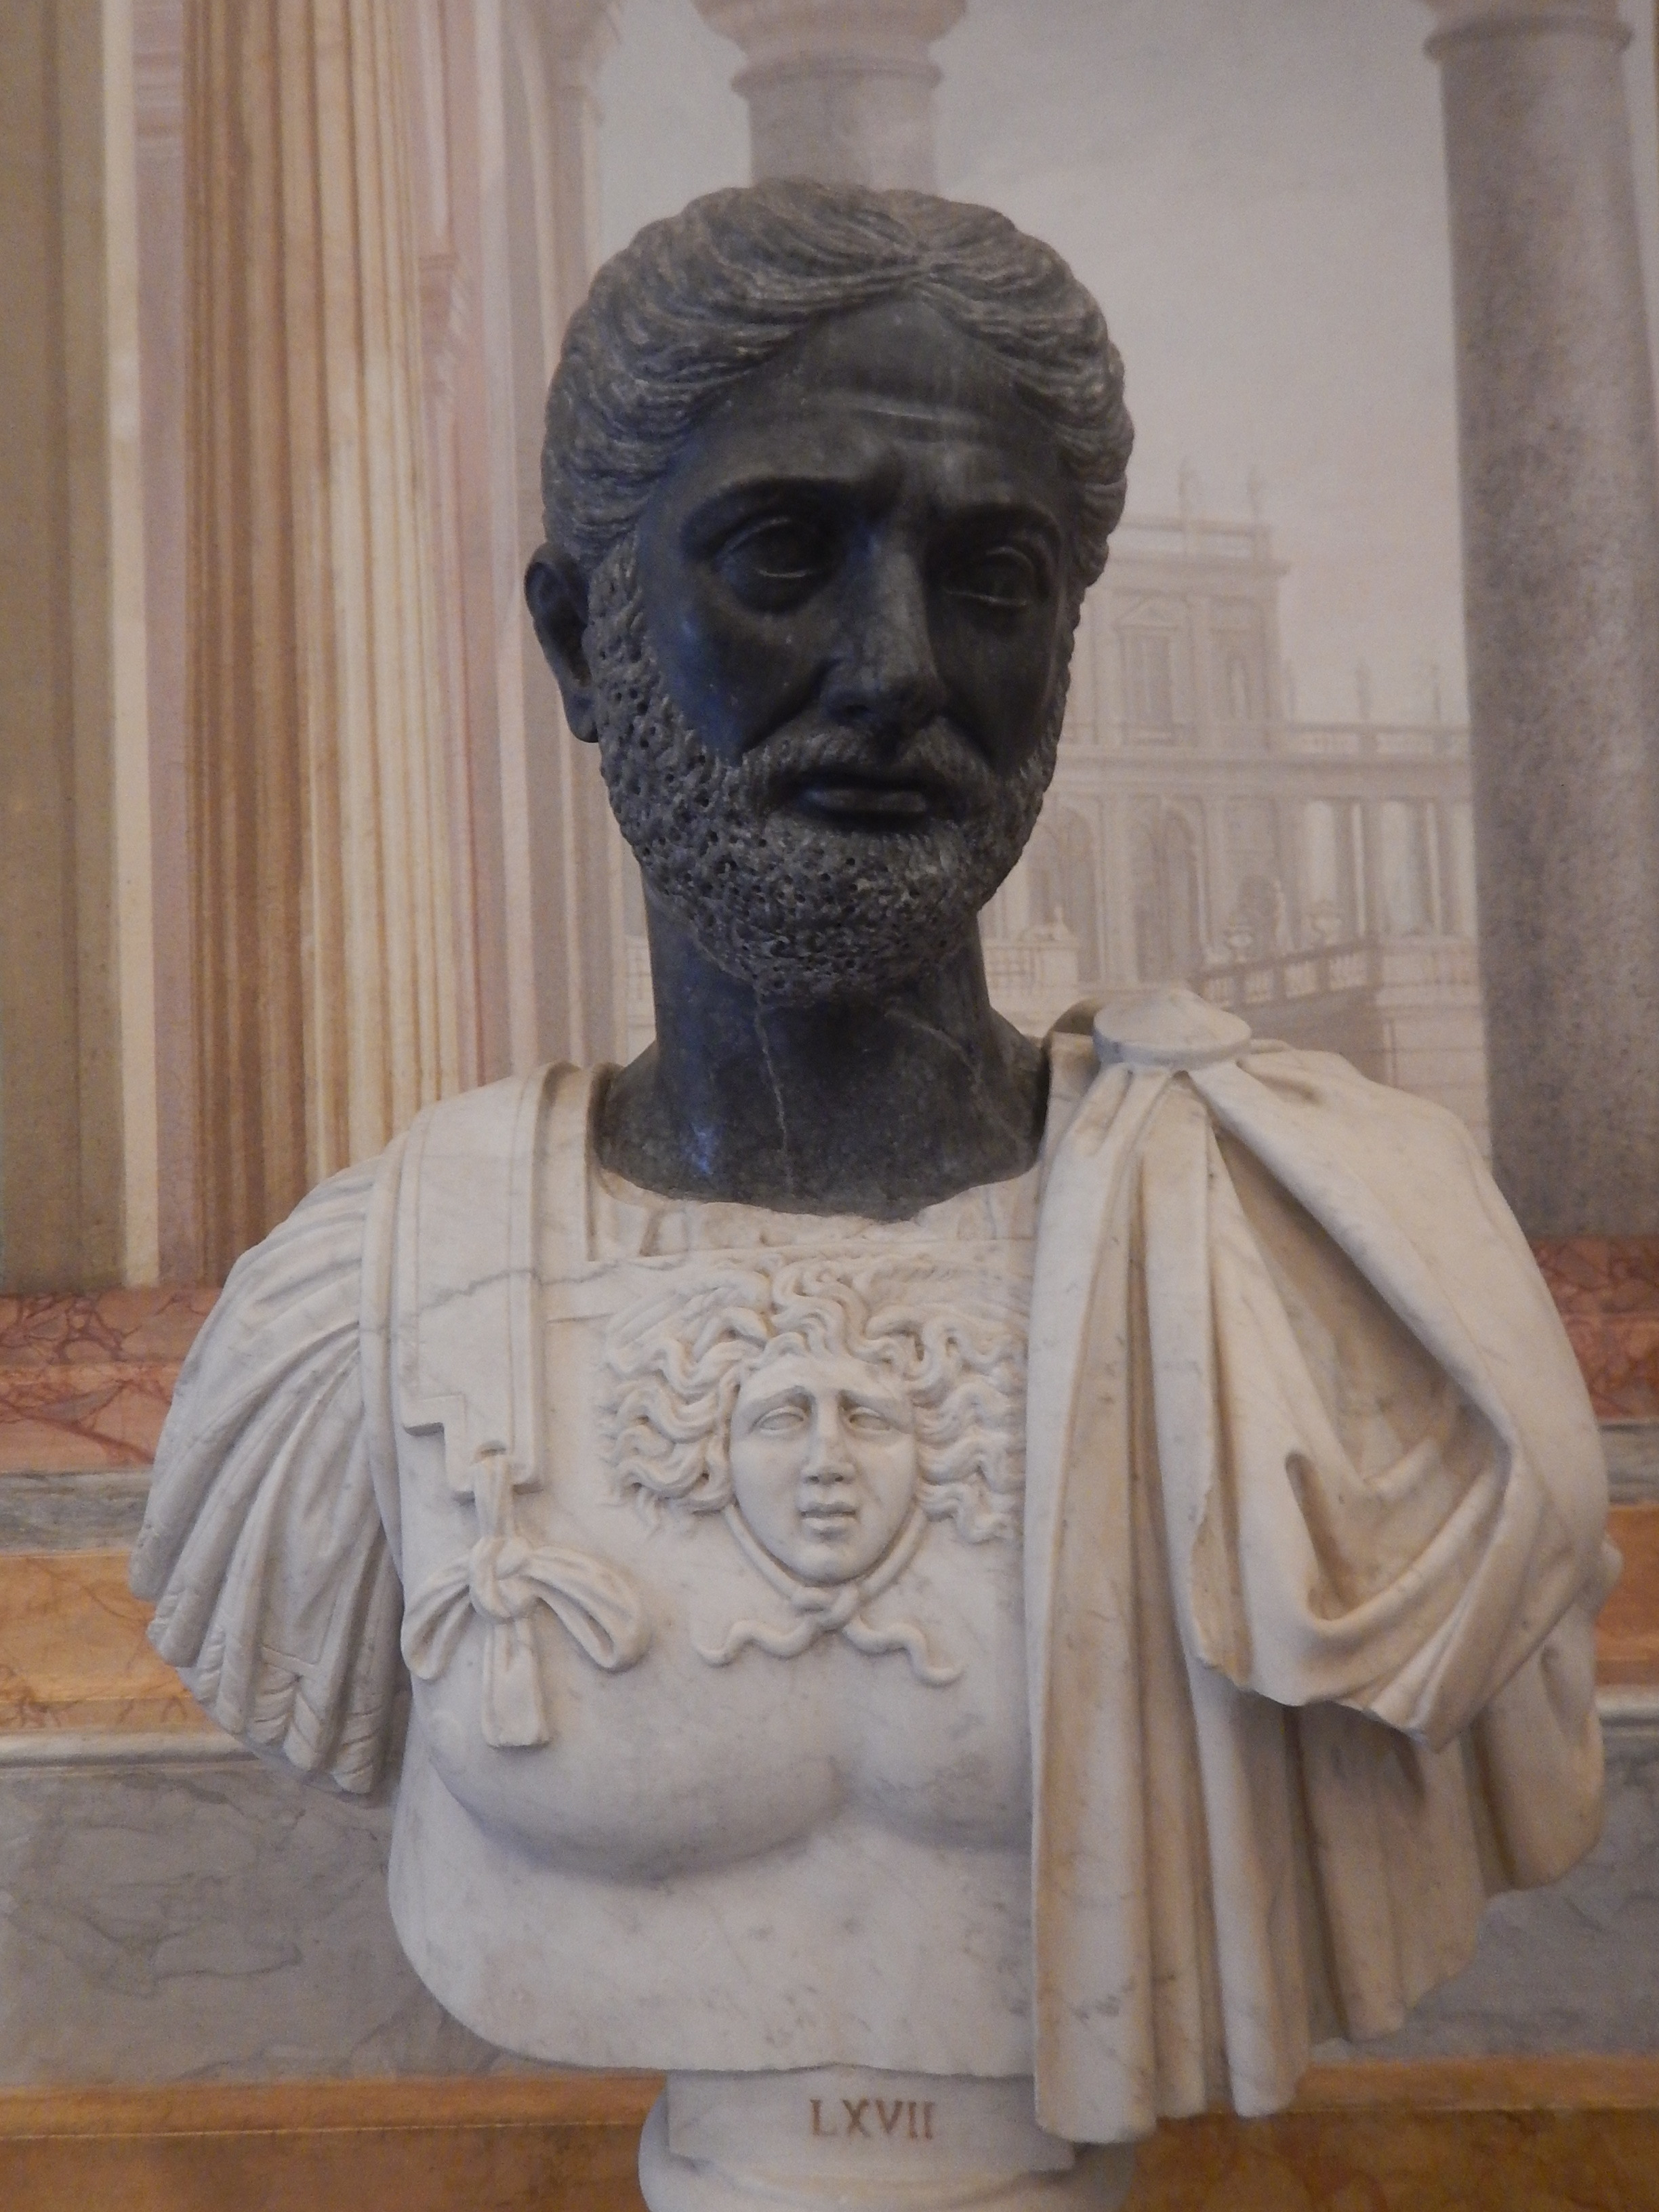 bernini often used contrasting marbles for his bust sculptures